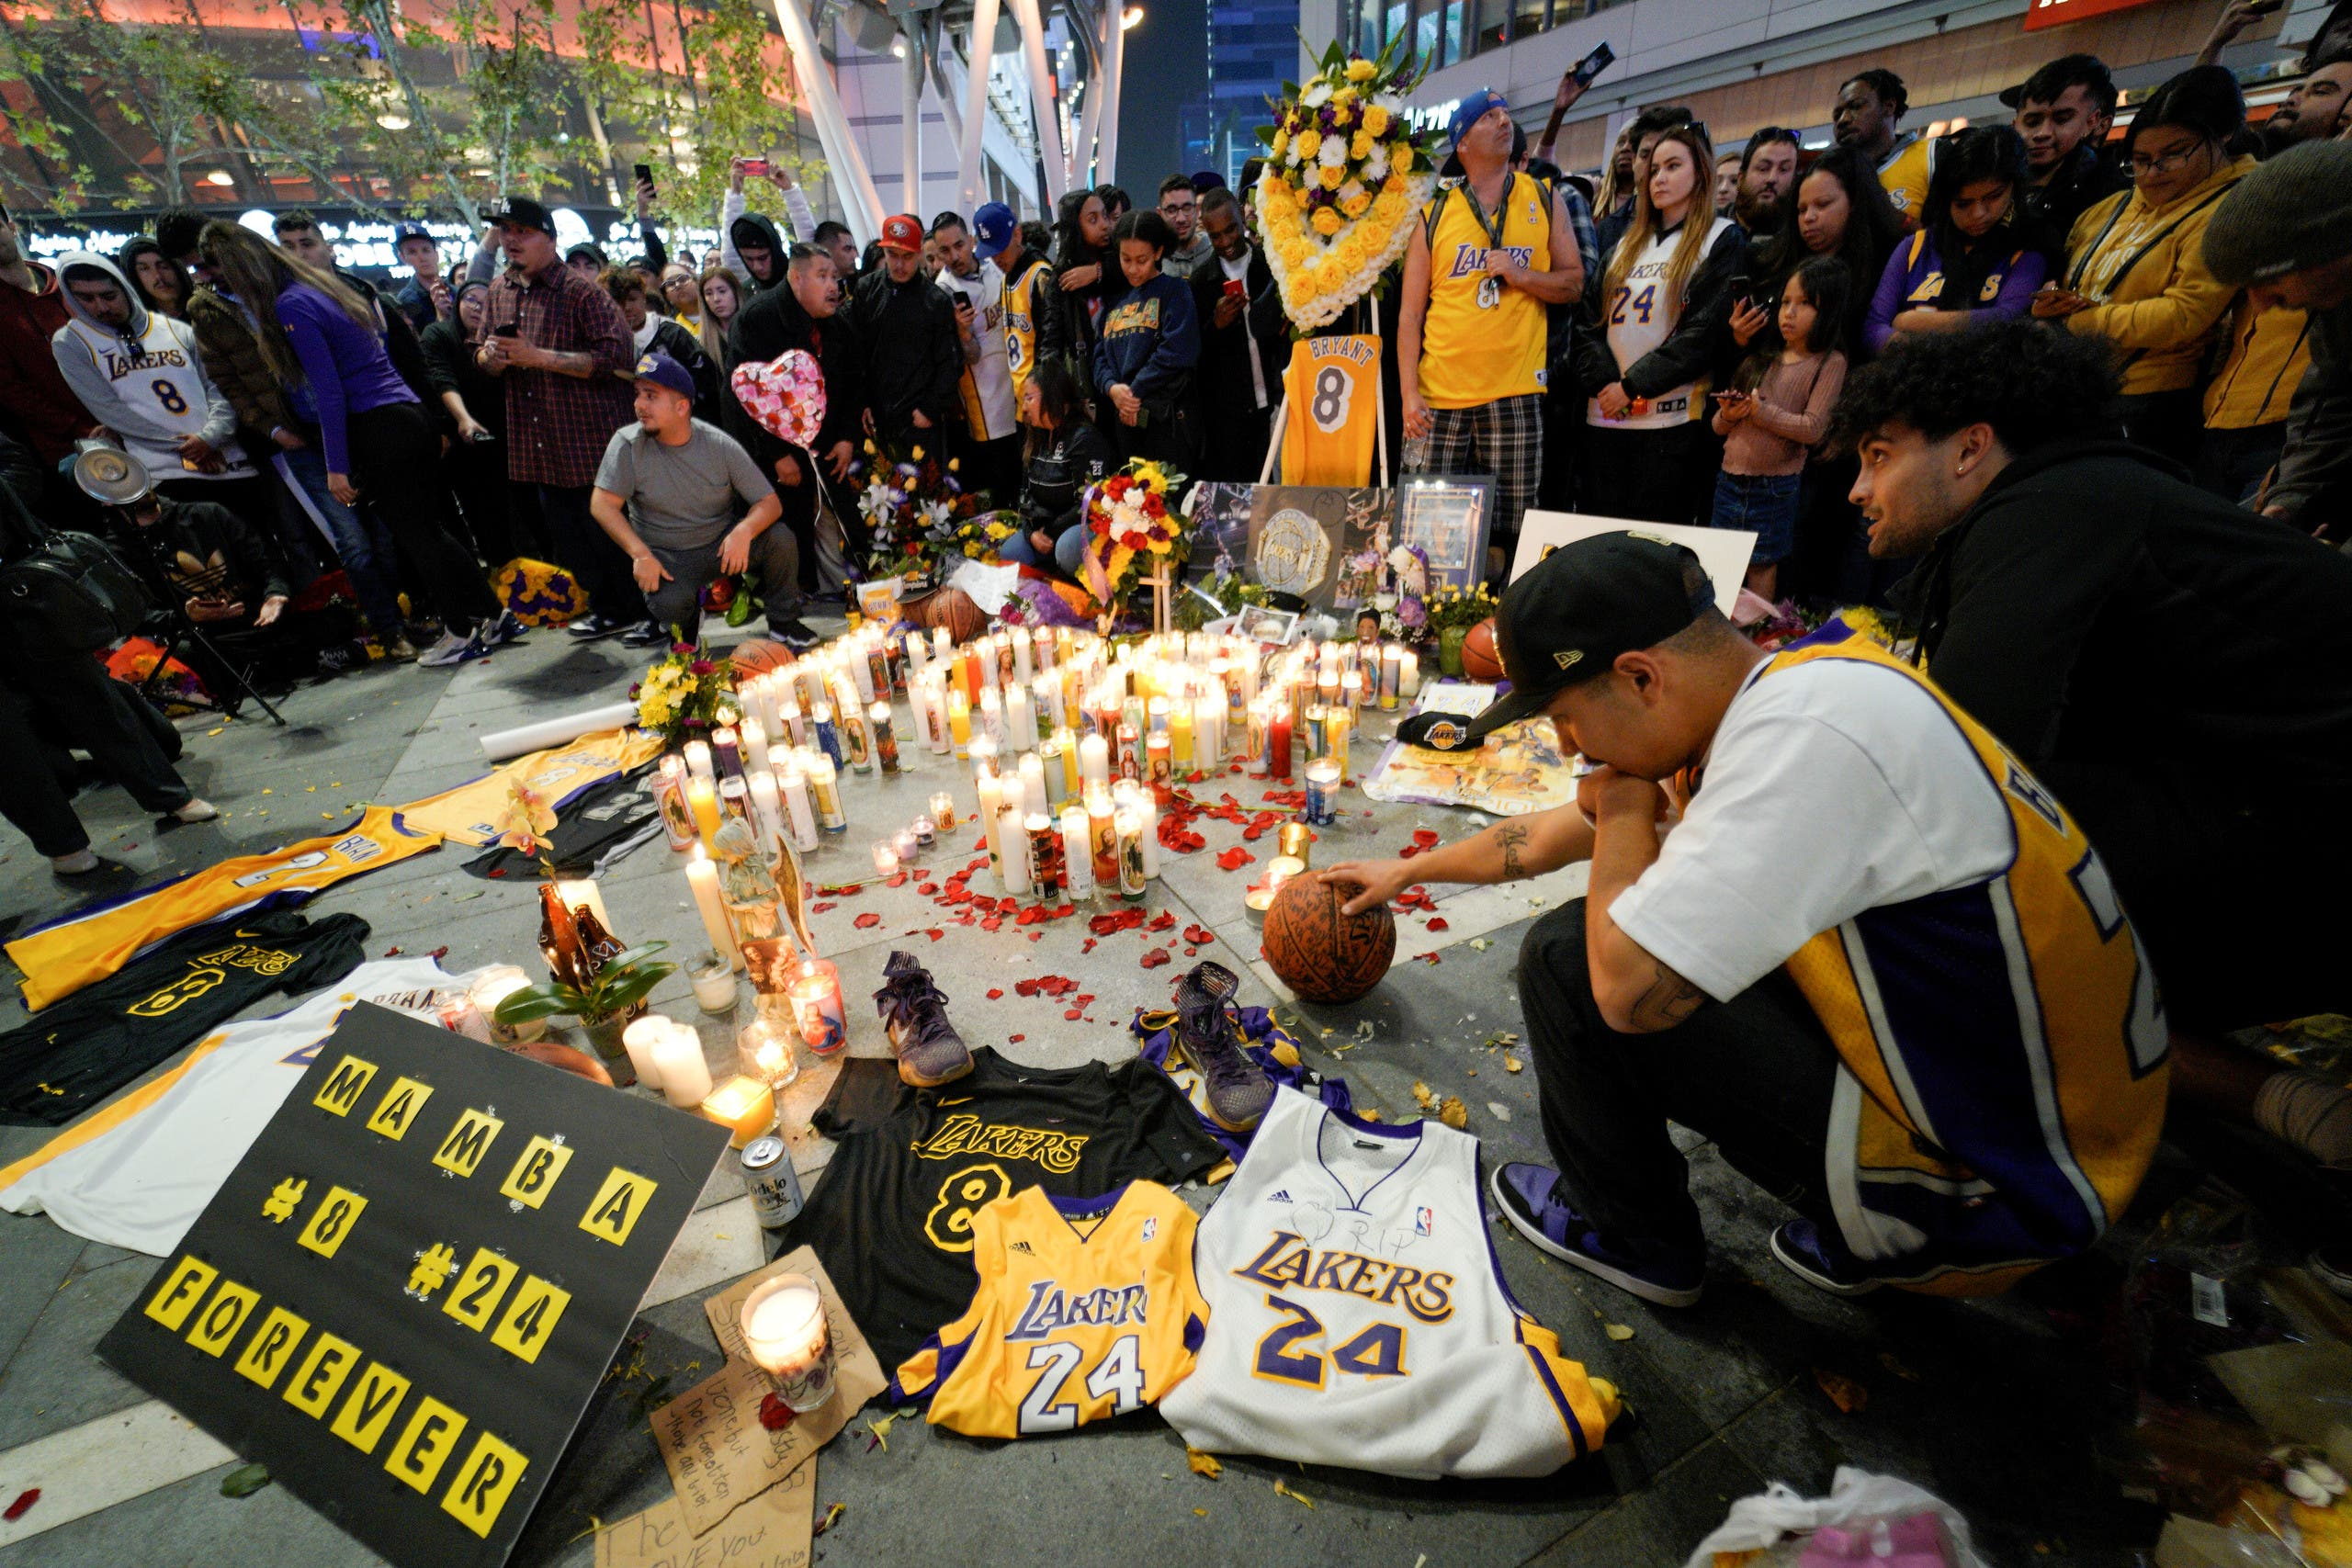 Mourners gather in Microsoft Square near the Staples Center to pay respects to Kobe Bryant after a helicopter crash killed the retired basketball star, in Los Angeles. (Reuters)